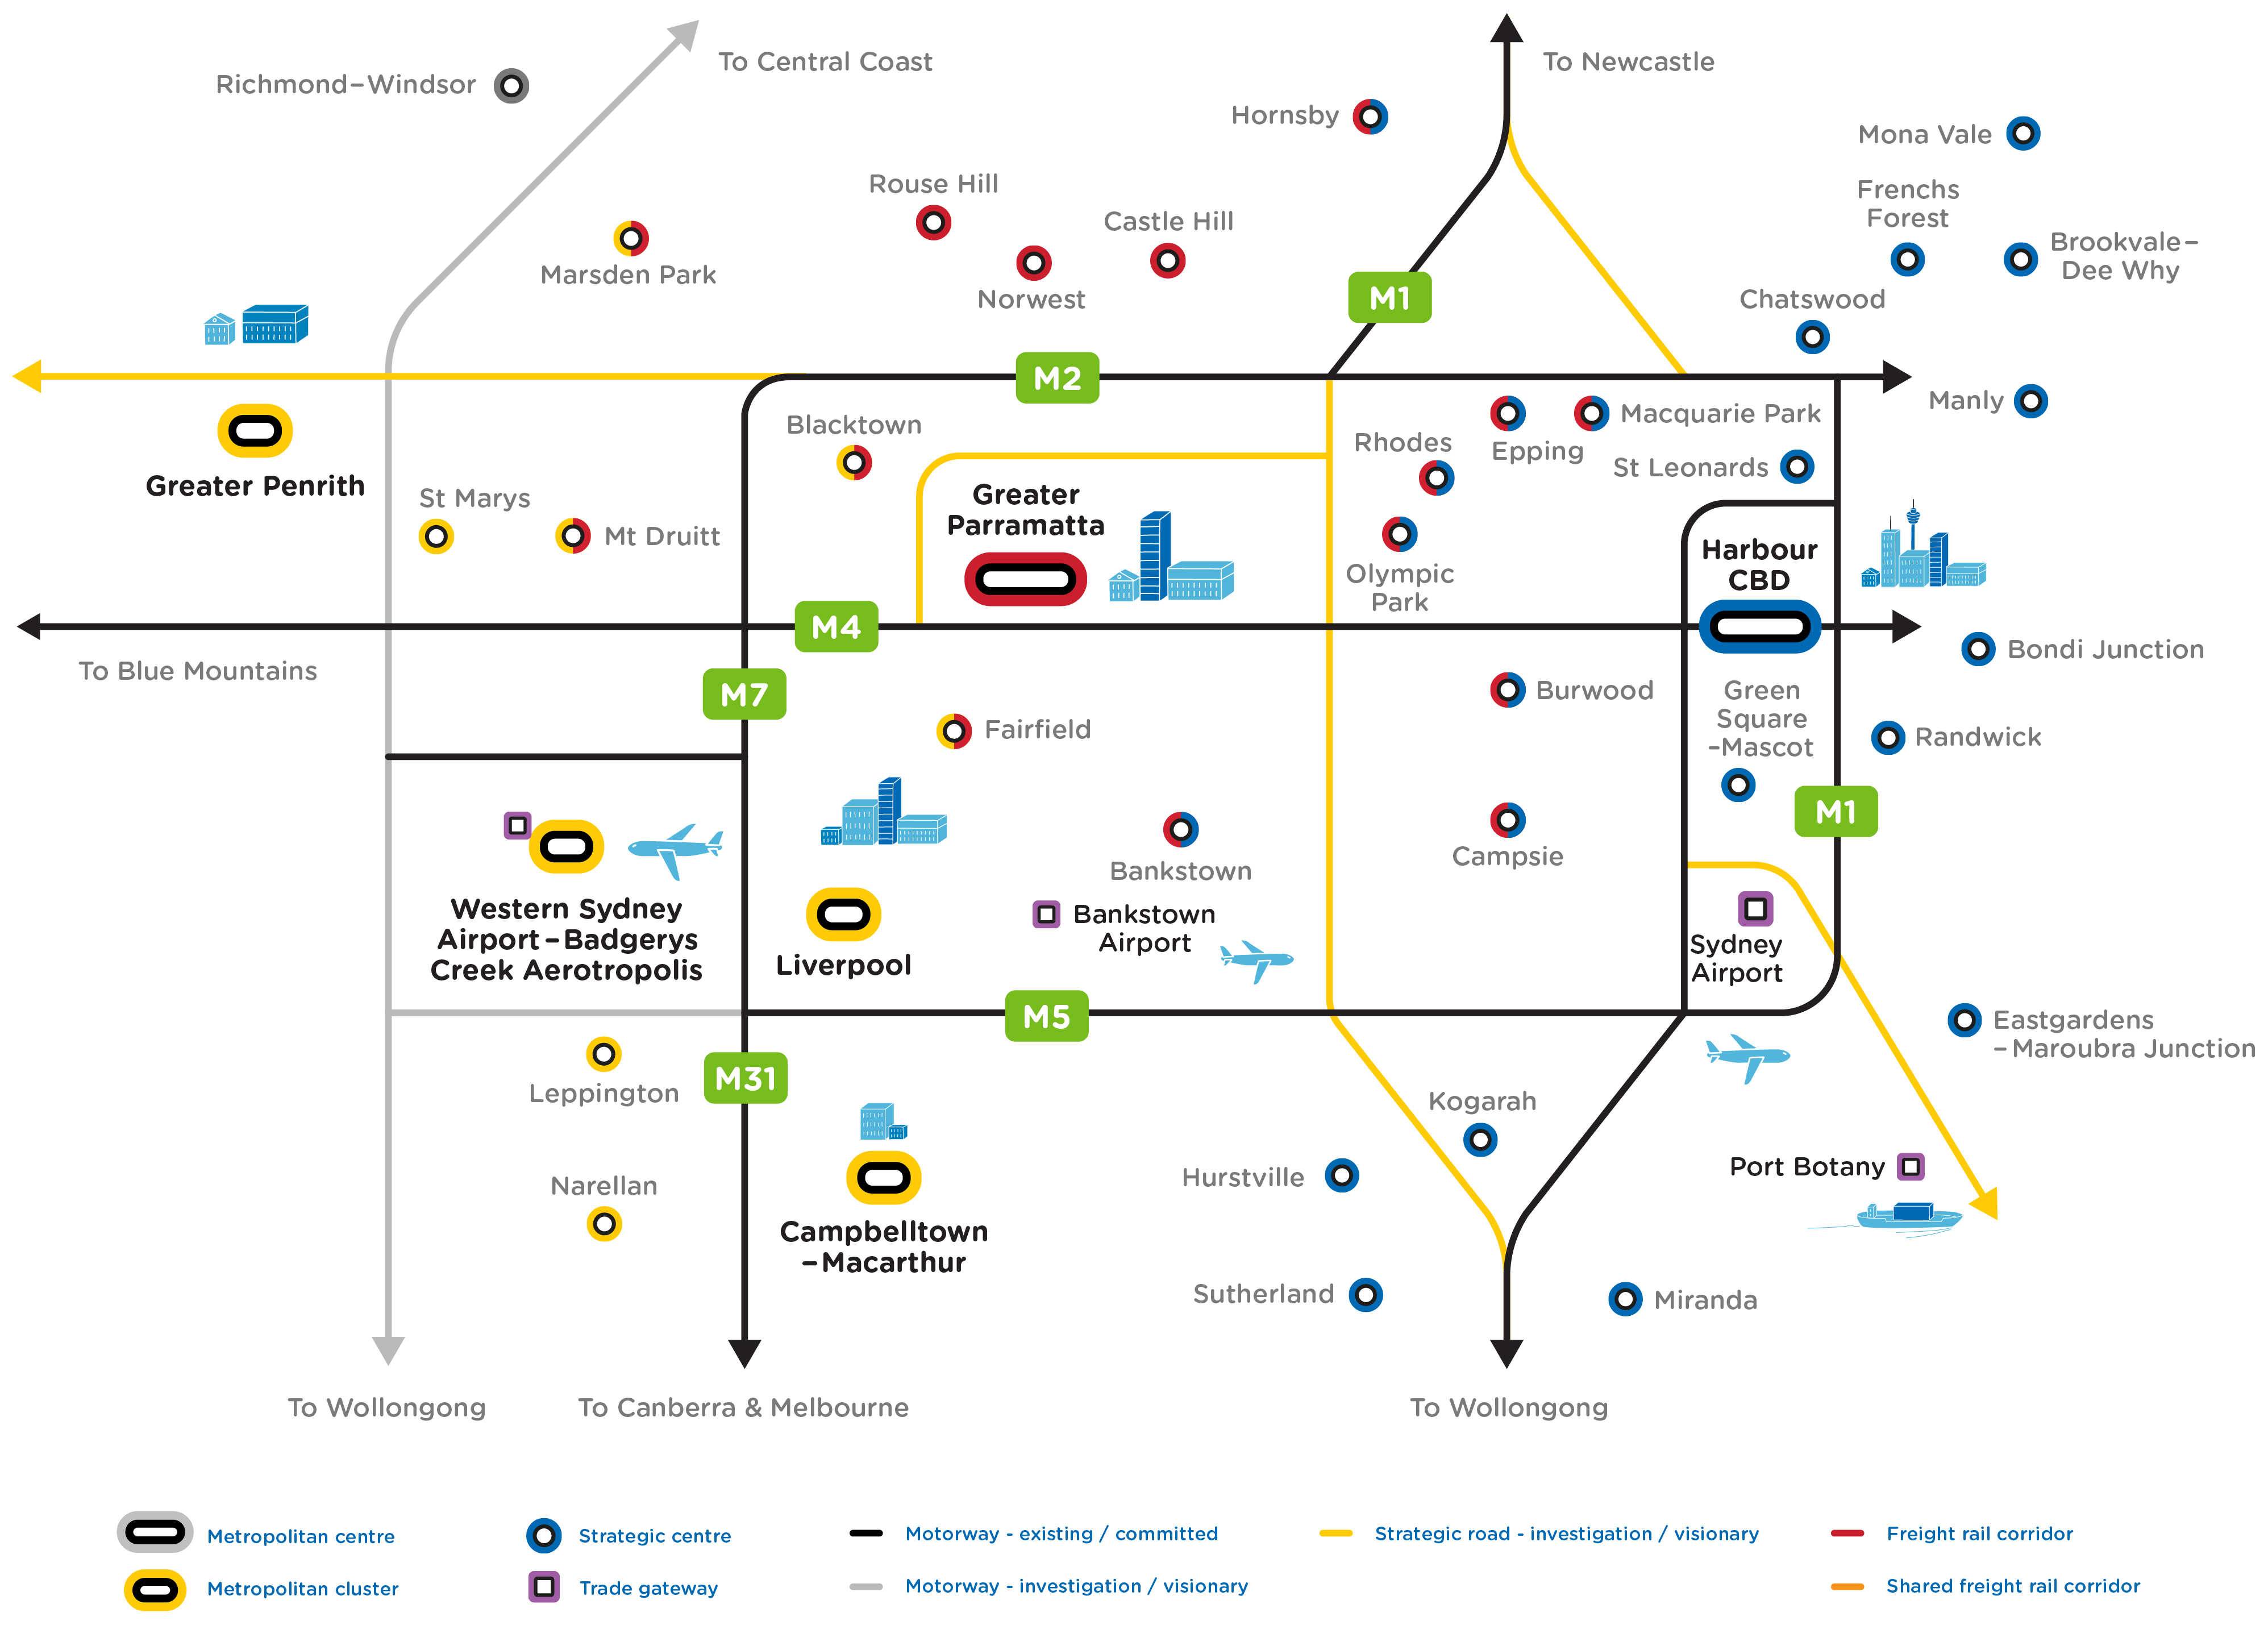 Future Transport map outlining the strategic road vision network showing connections between metropolitan centres, metropolitan clusters, strategic centres and trade gateways.